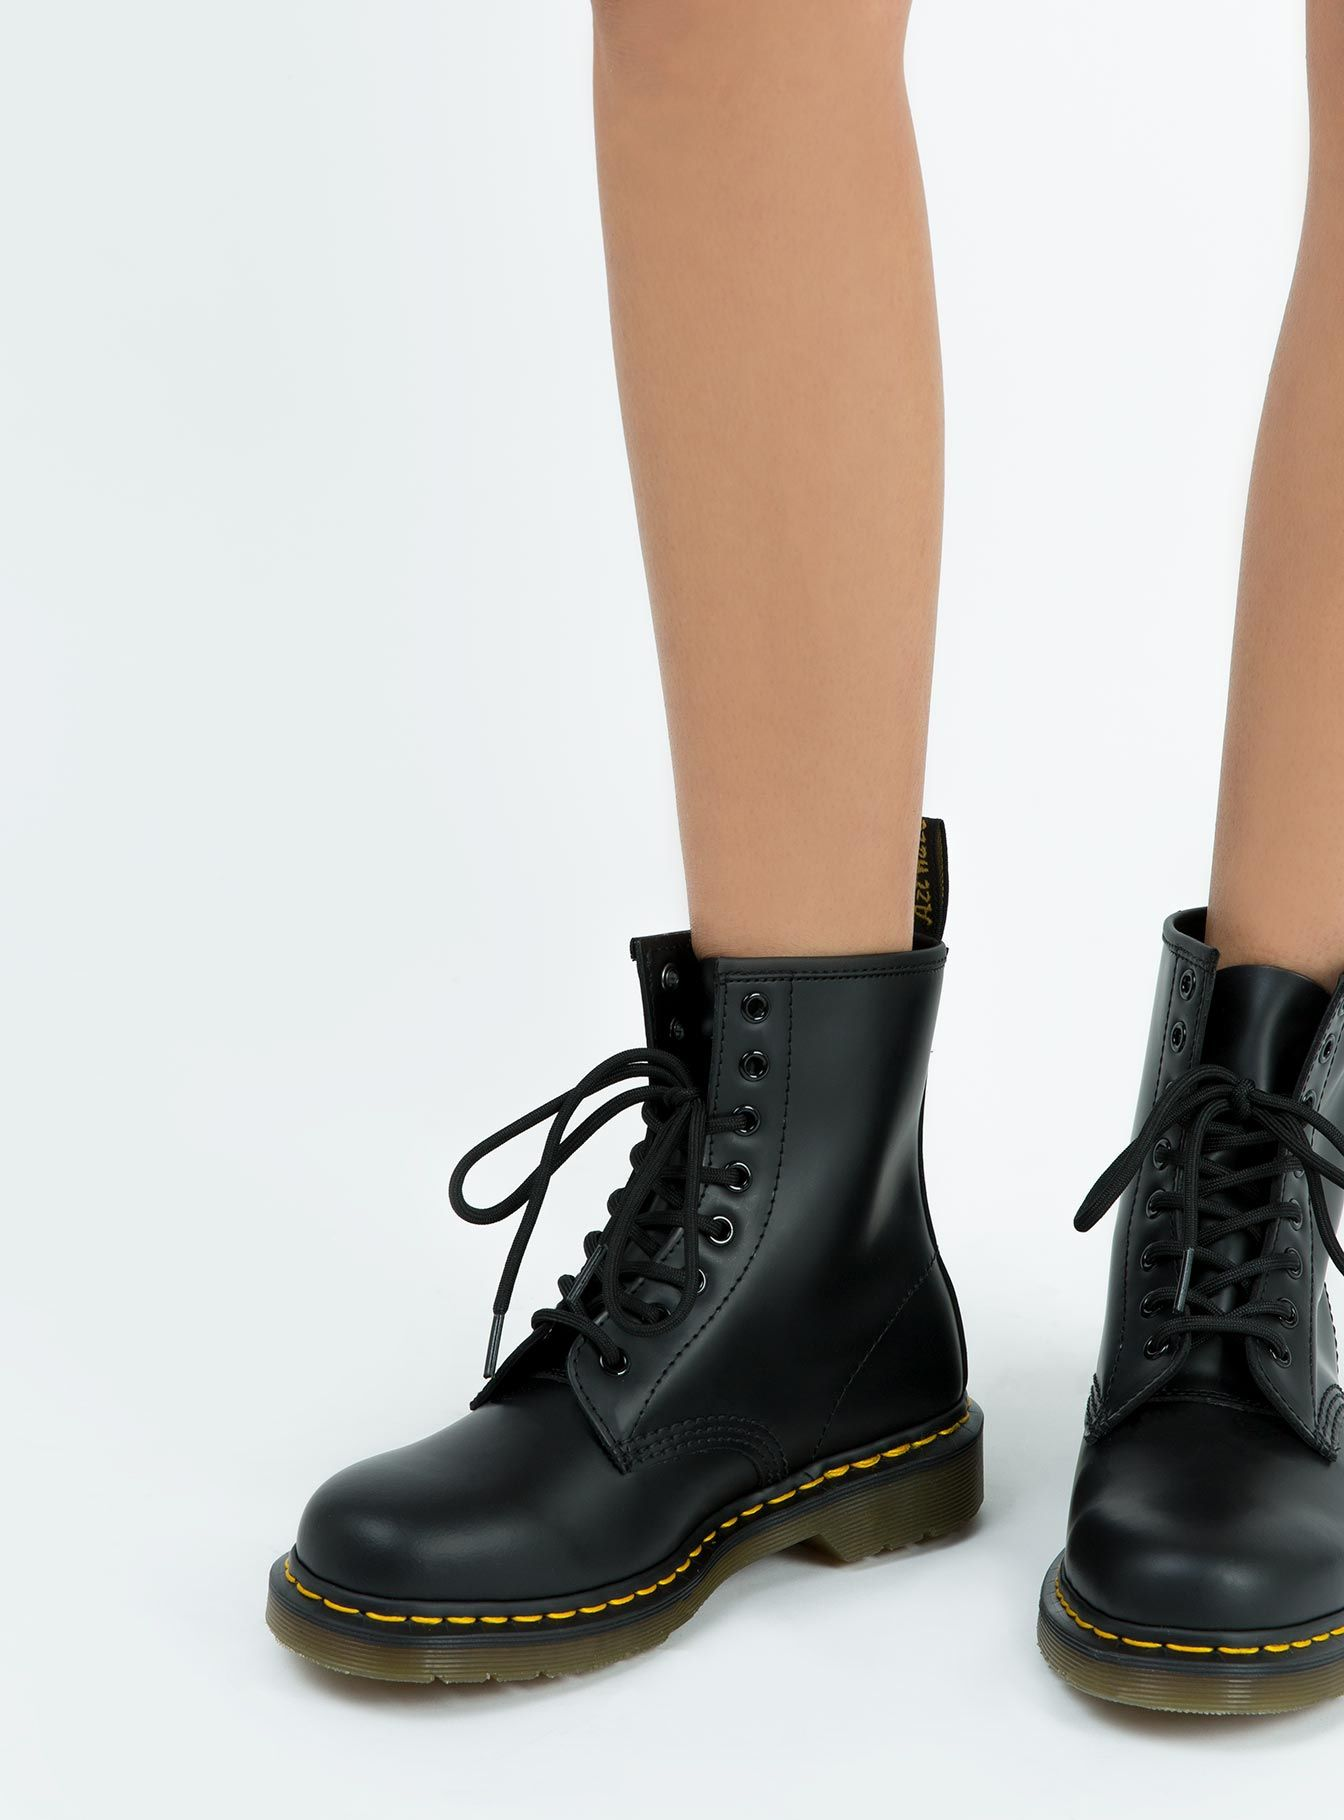 10 Best Fall Ready Dr. Martens Boots to Shop Right Now